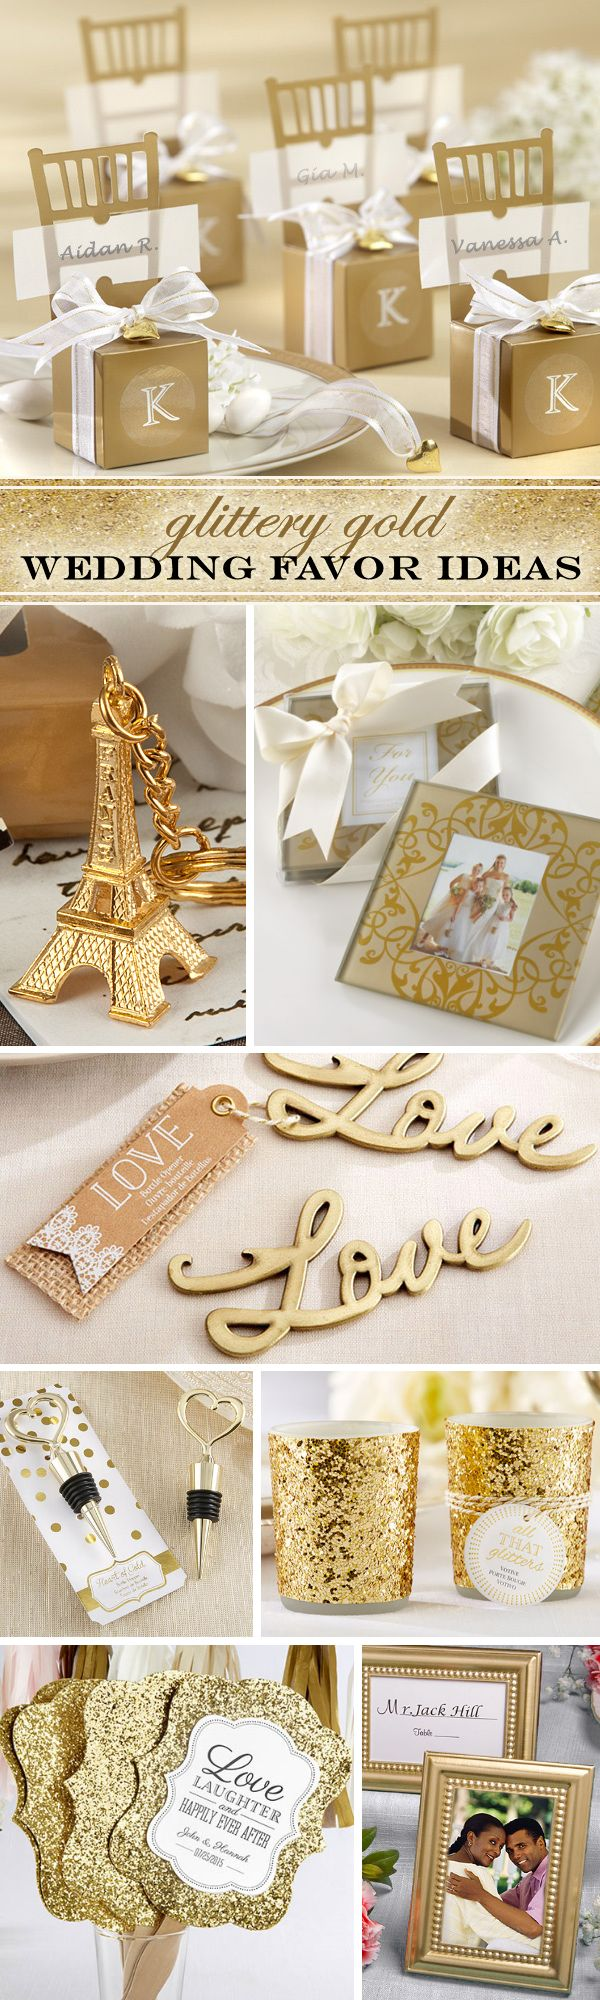 #Gold #Wedding … ideas, ideas and more ideas about  HOW TO plan a wedding  ♡ https://itunes.apple.com/us/app/the-gold-wedding-planner/id498112599?ls=1=8